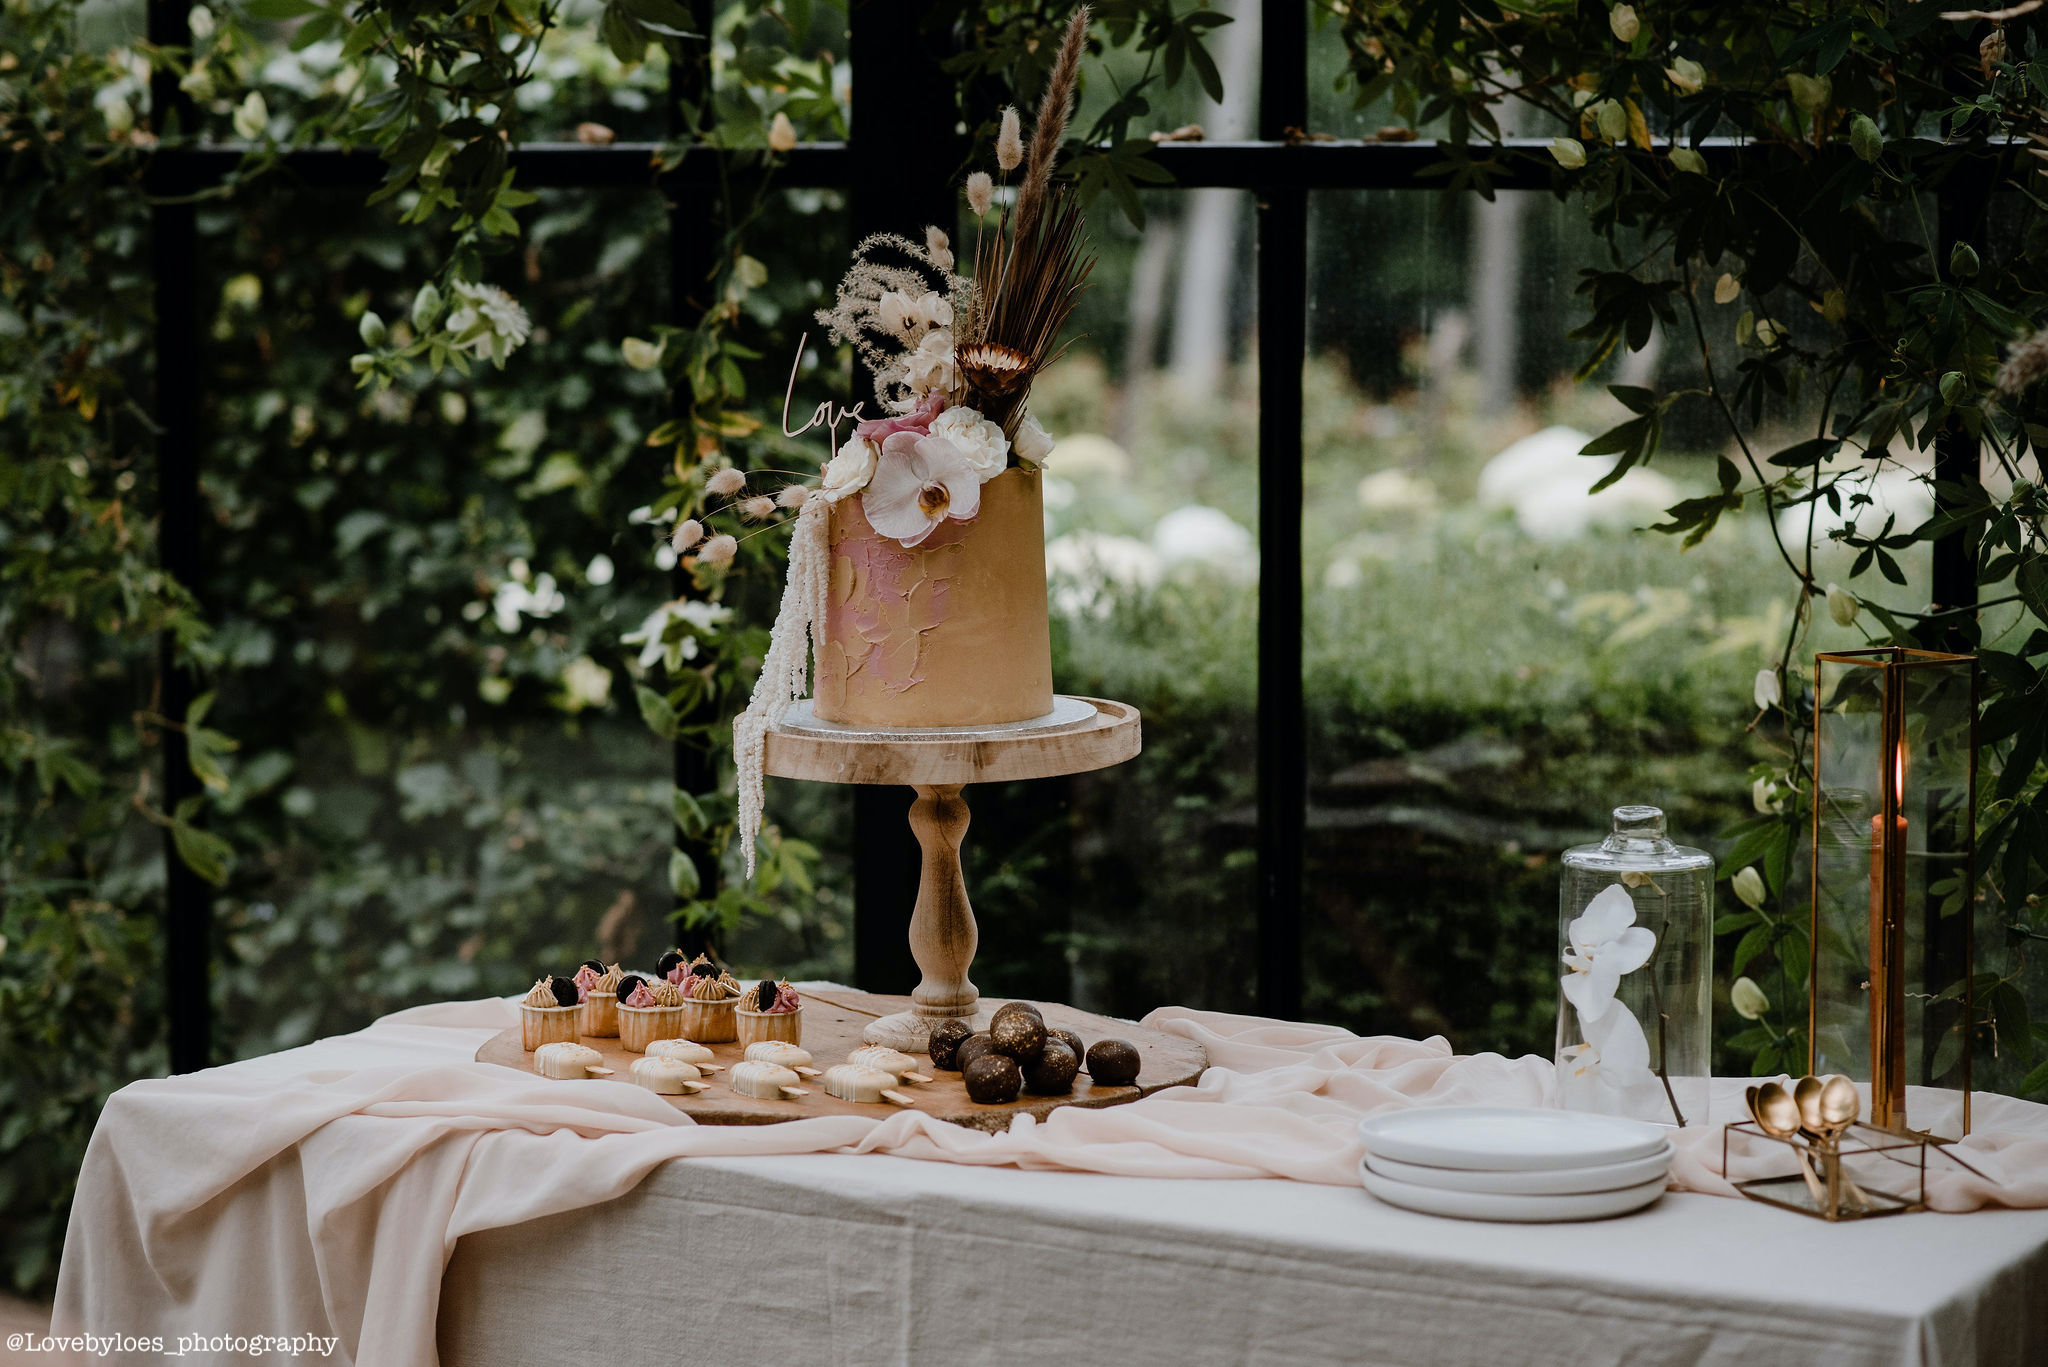 Sweet table op je bruiloft - Love by Loes Photography